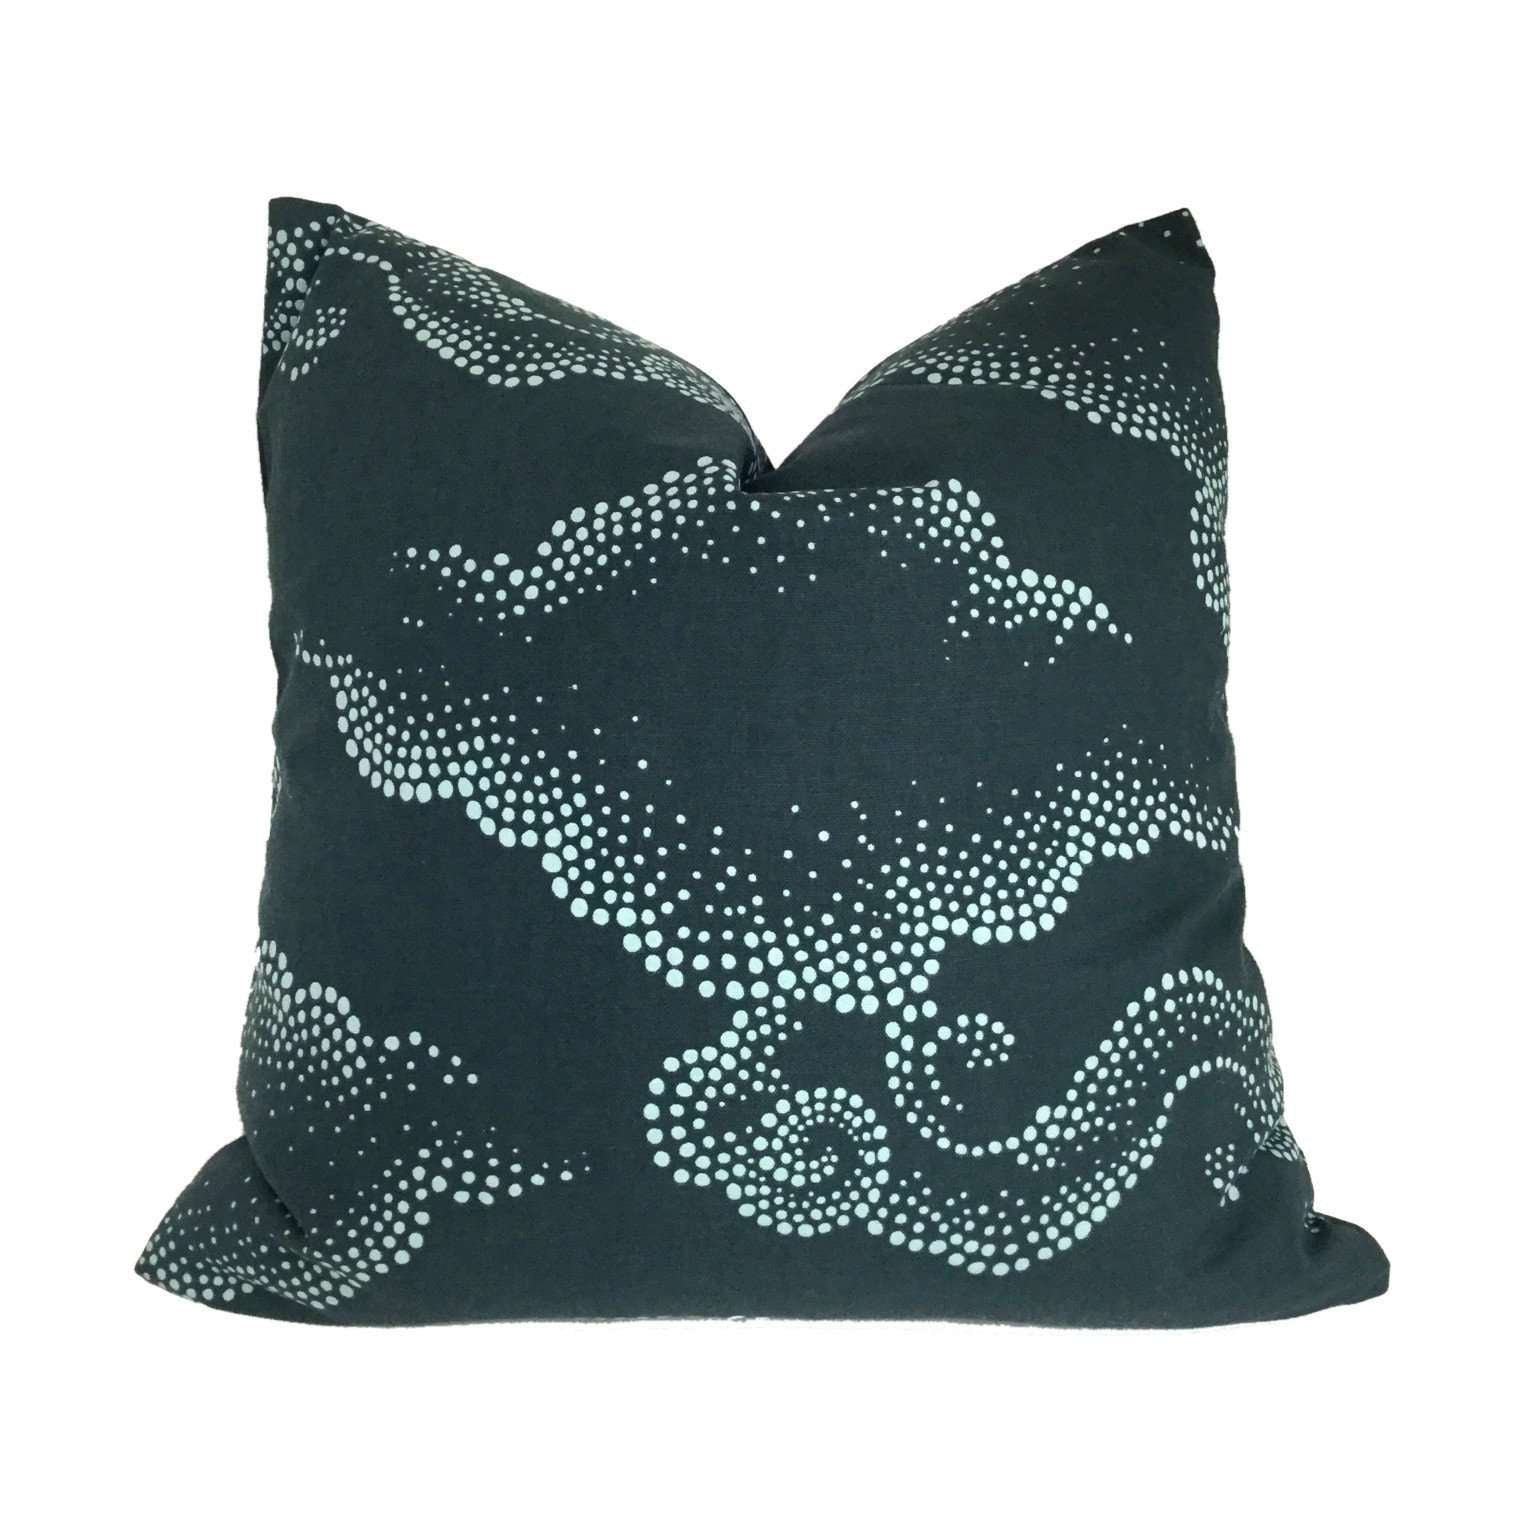 Robert Allen Dwell Studio Cloudburst Dark Navy Blue Asian Cloud Motif Pillow Cover Cushion Pillow Case Euro Sham 16x16 18x18 20x20 22x22 24x24 26x26 28x28 Lumbar Pillow 12x18 12x20 12x24 14x20 16x26 by Aloriam